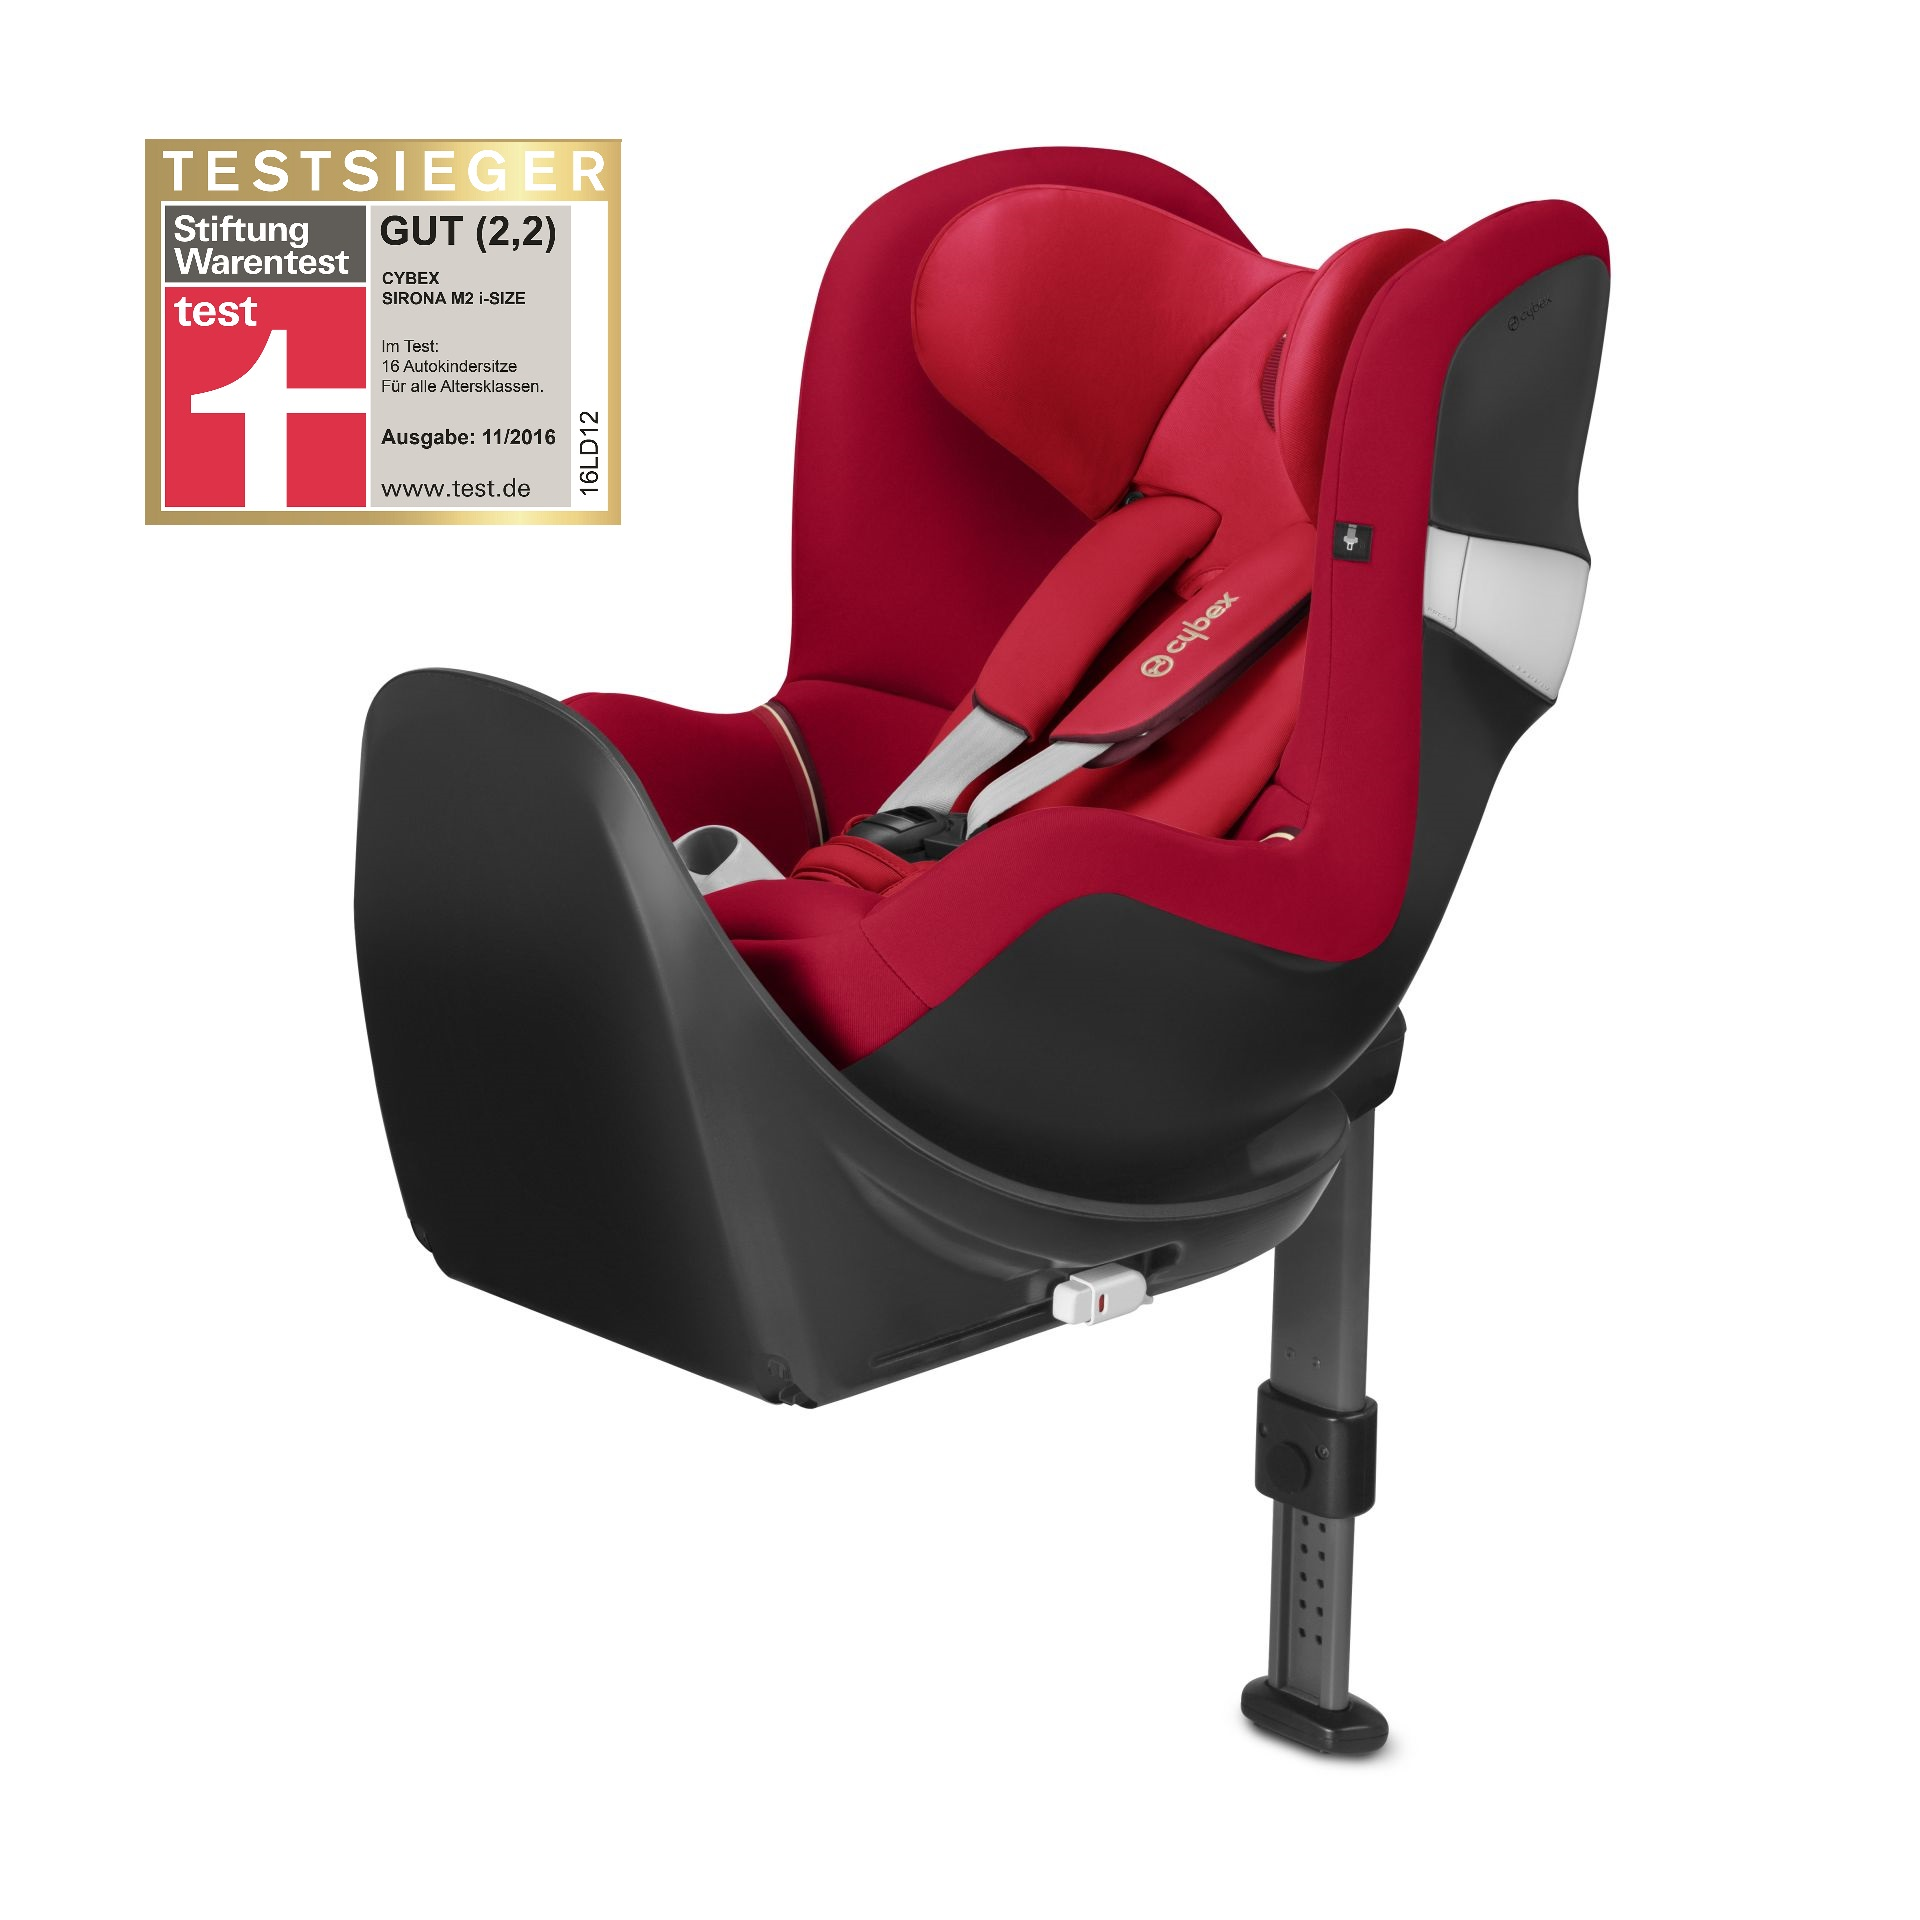 cybex car seat sirona m2 i size buy at kidsroom car seats. Black Bedroom Furniture Sets. Home Design Ideas